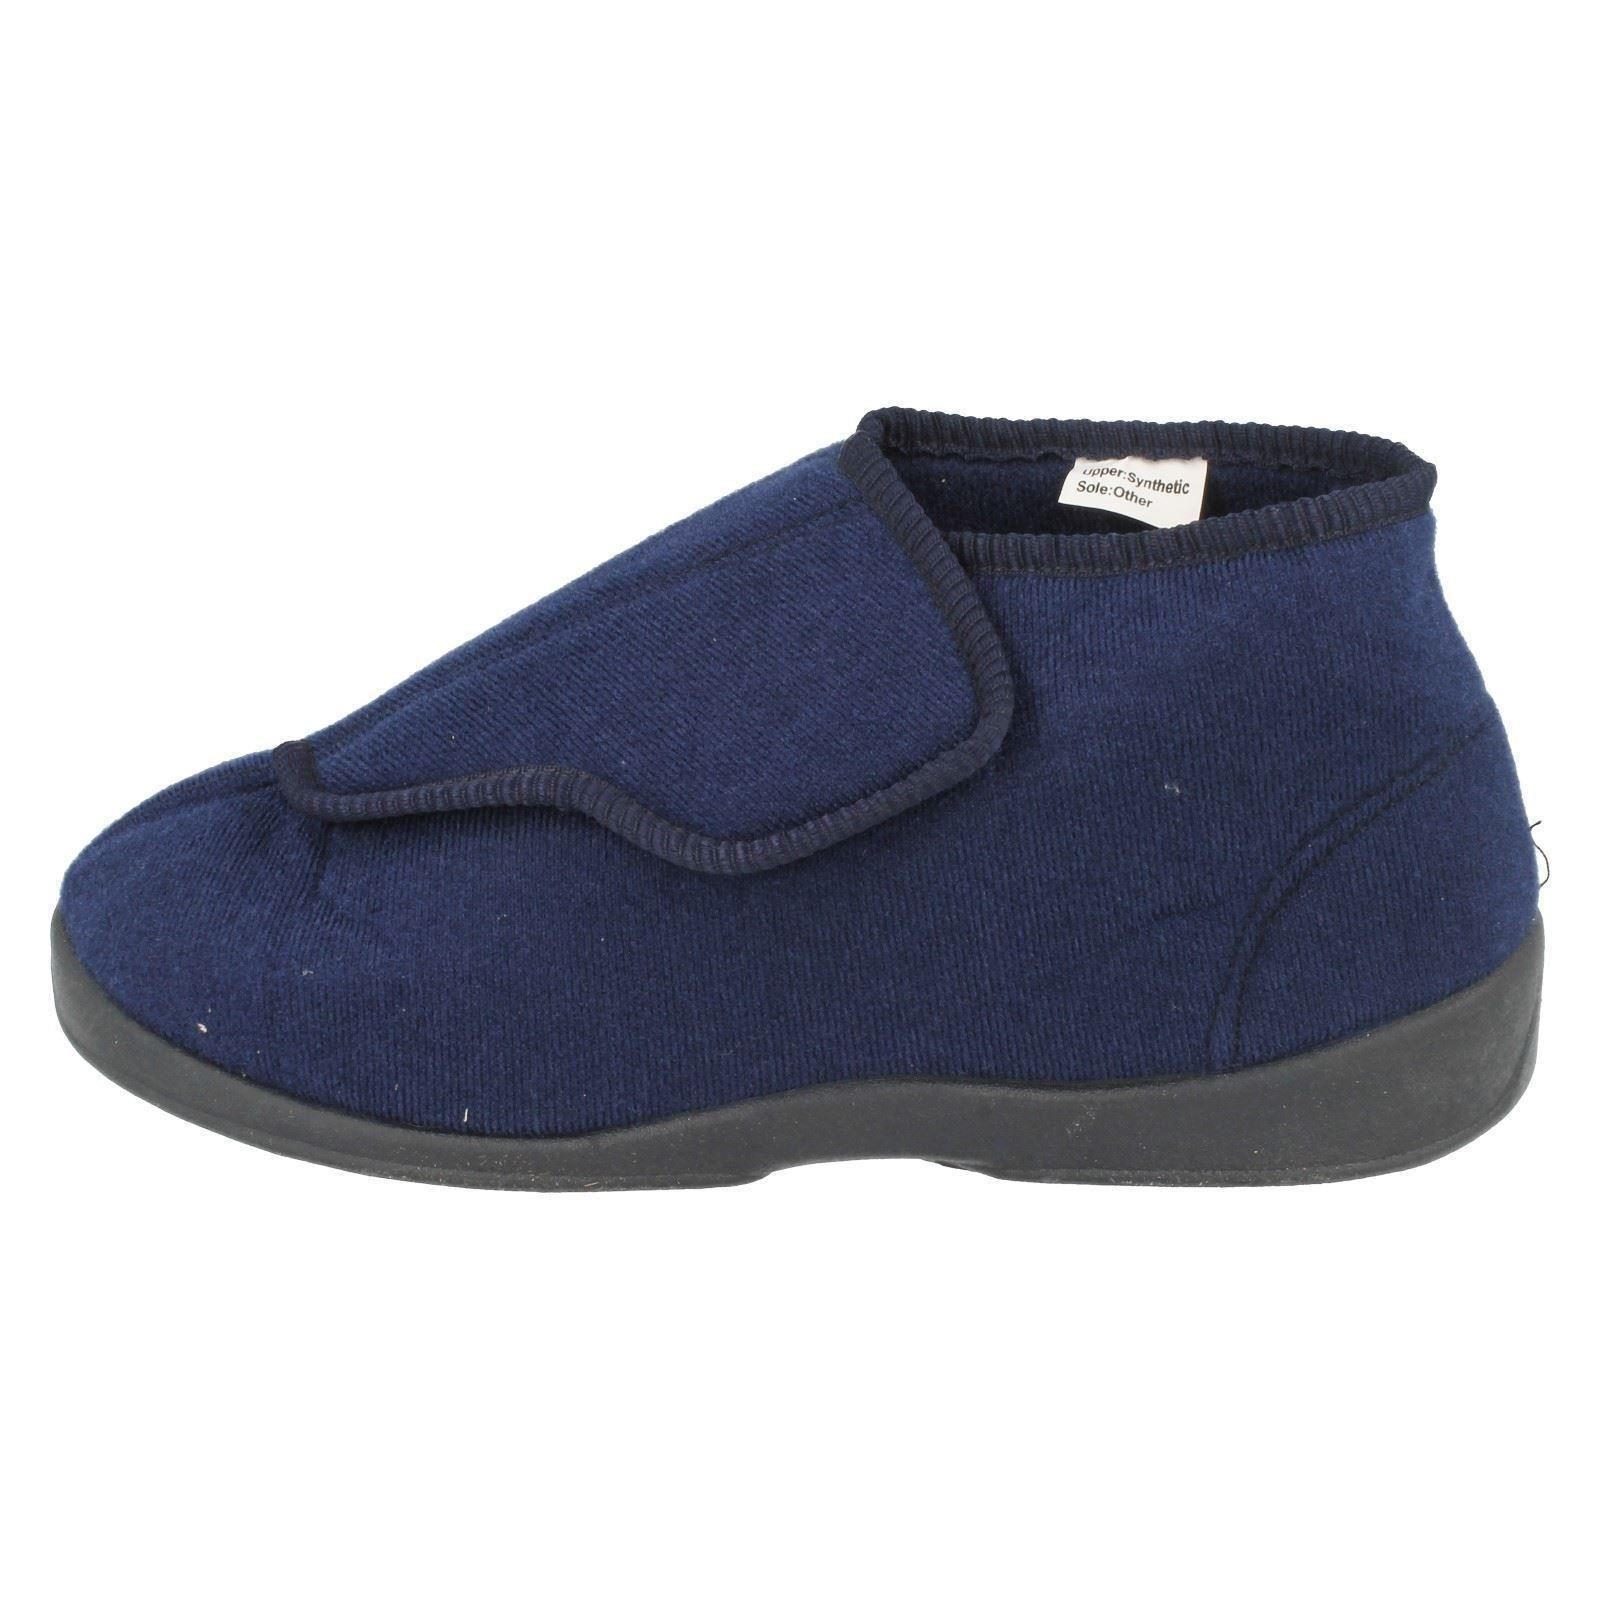 Mens-Natureform-Wide-Fitting-Boot-Slippers-039-Arthur-039-Style-K